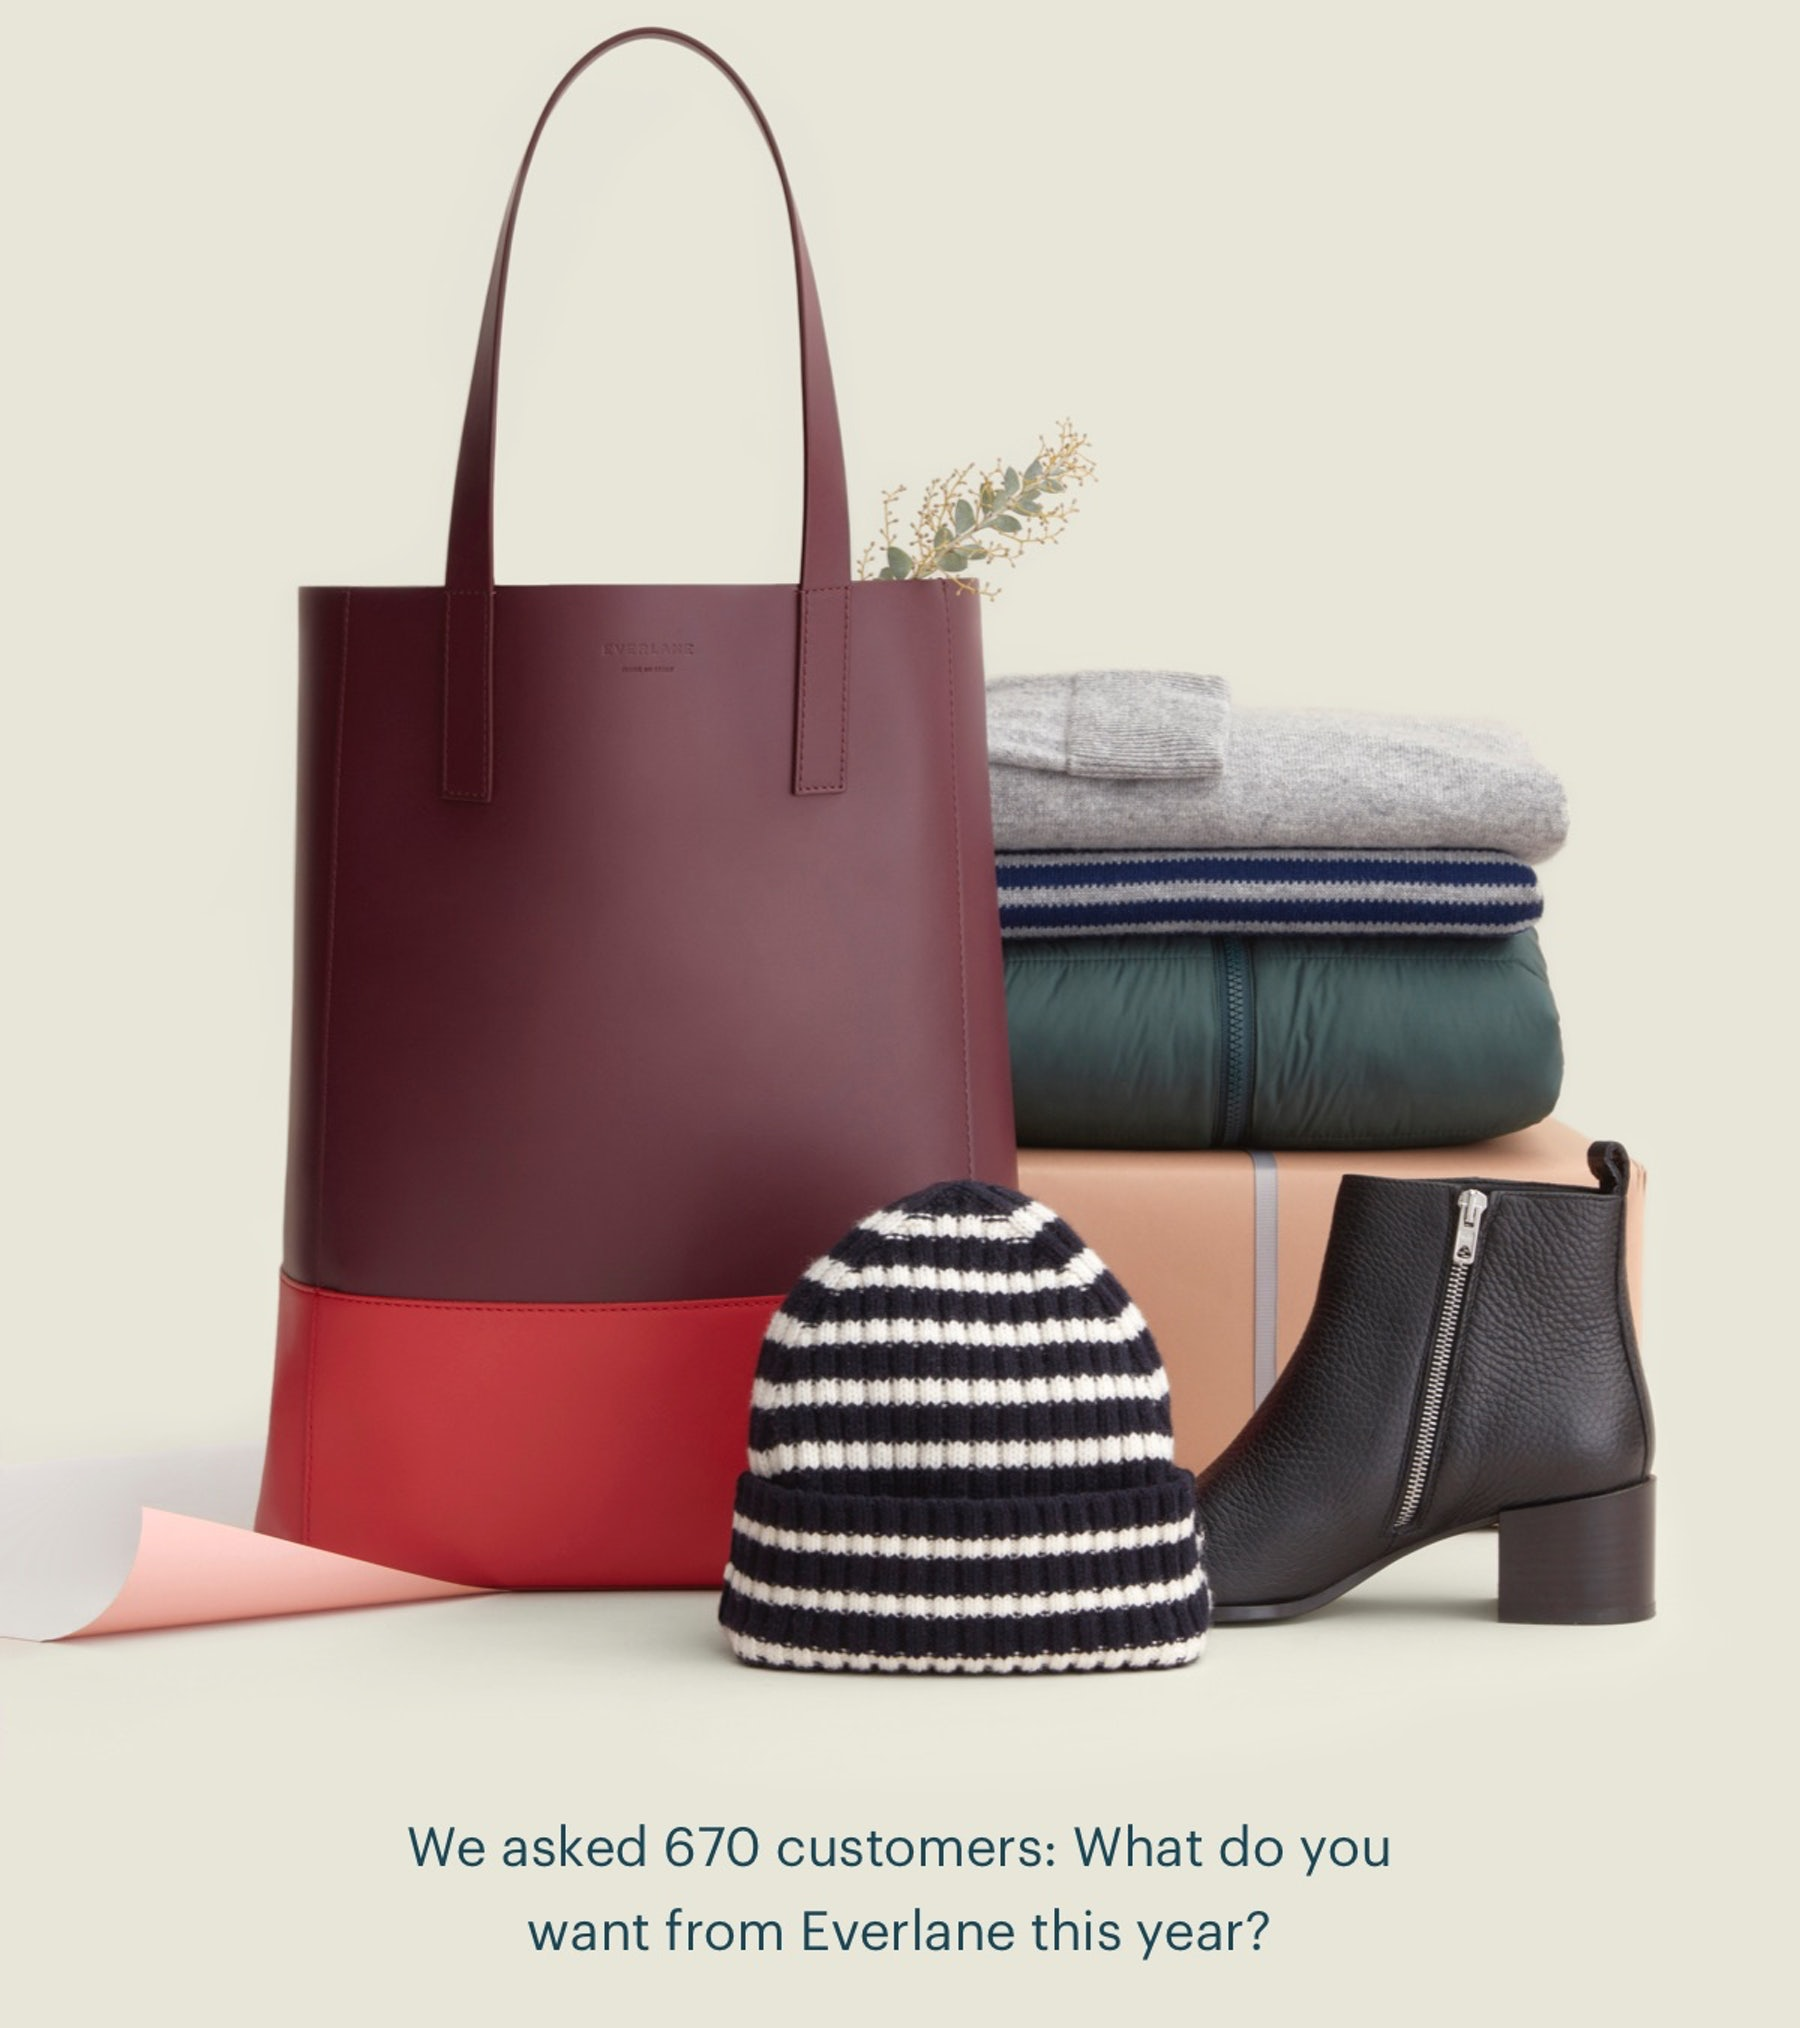 We asked 670 customers: What do you want from Everlane this year?